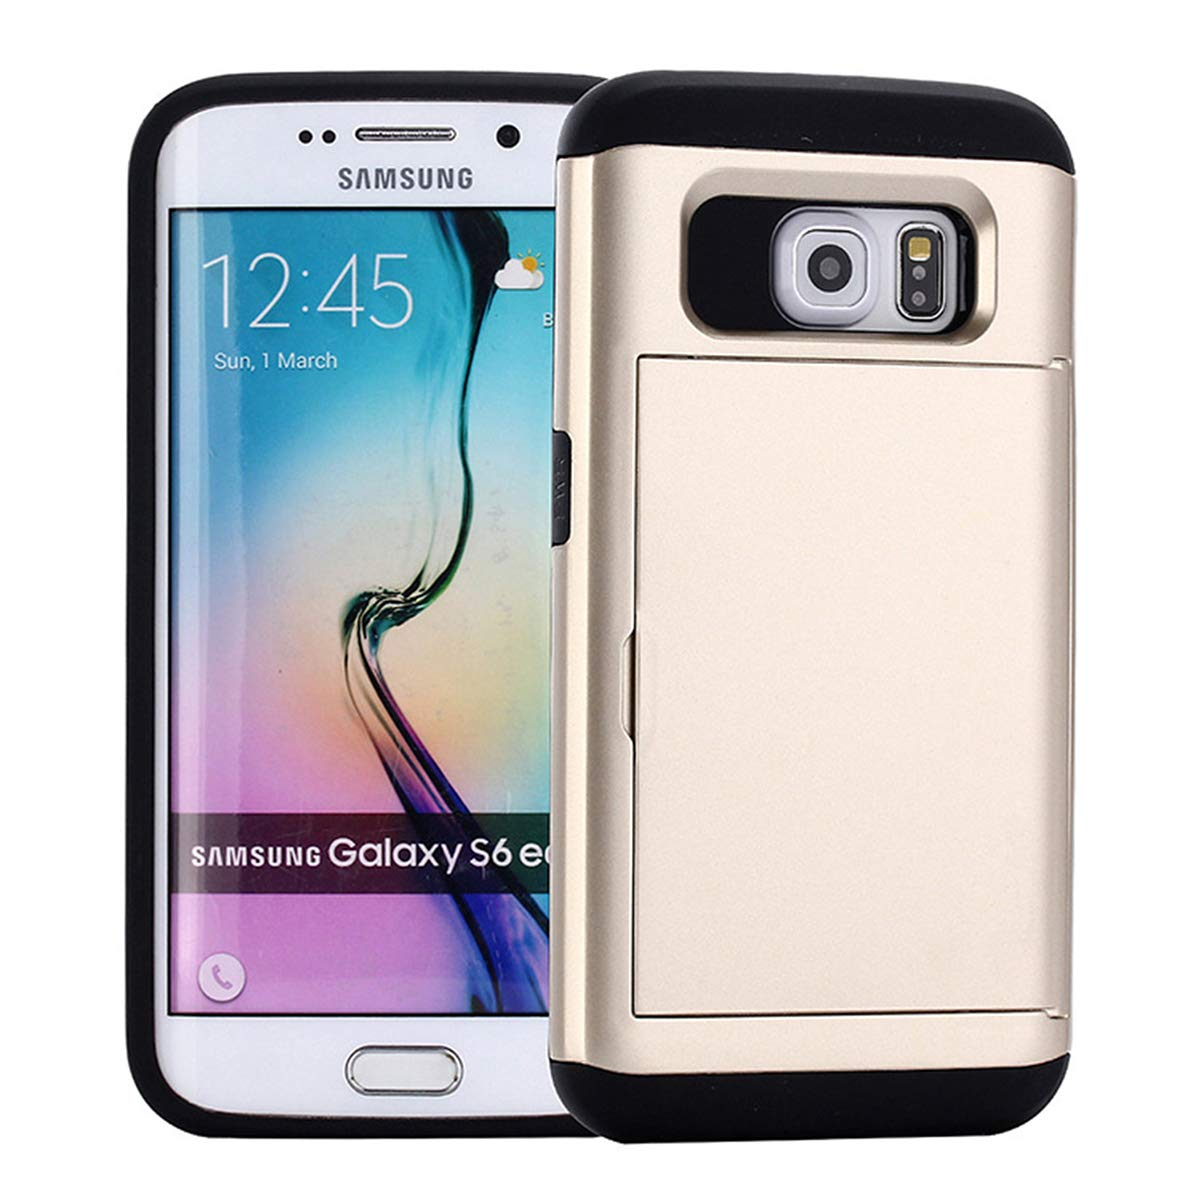 Ldea Case for Galaxy S8 Plus Case, Wallet Card Holder Slot Sliding Cover ID Pocket Anti-Scratch Protective case for Galaxy S8 Plus 6.2 inch (Gold) by Ldea